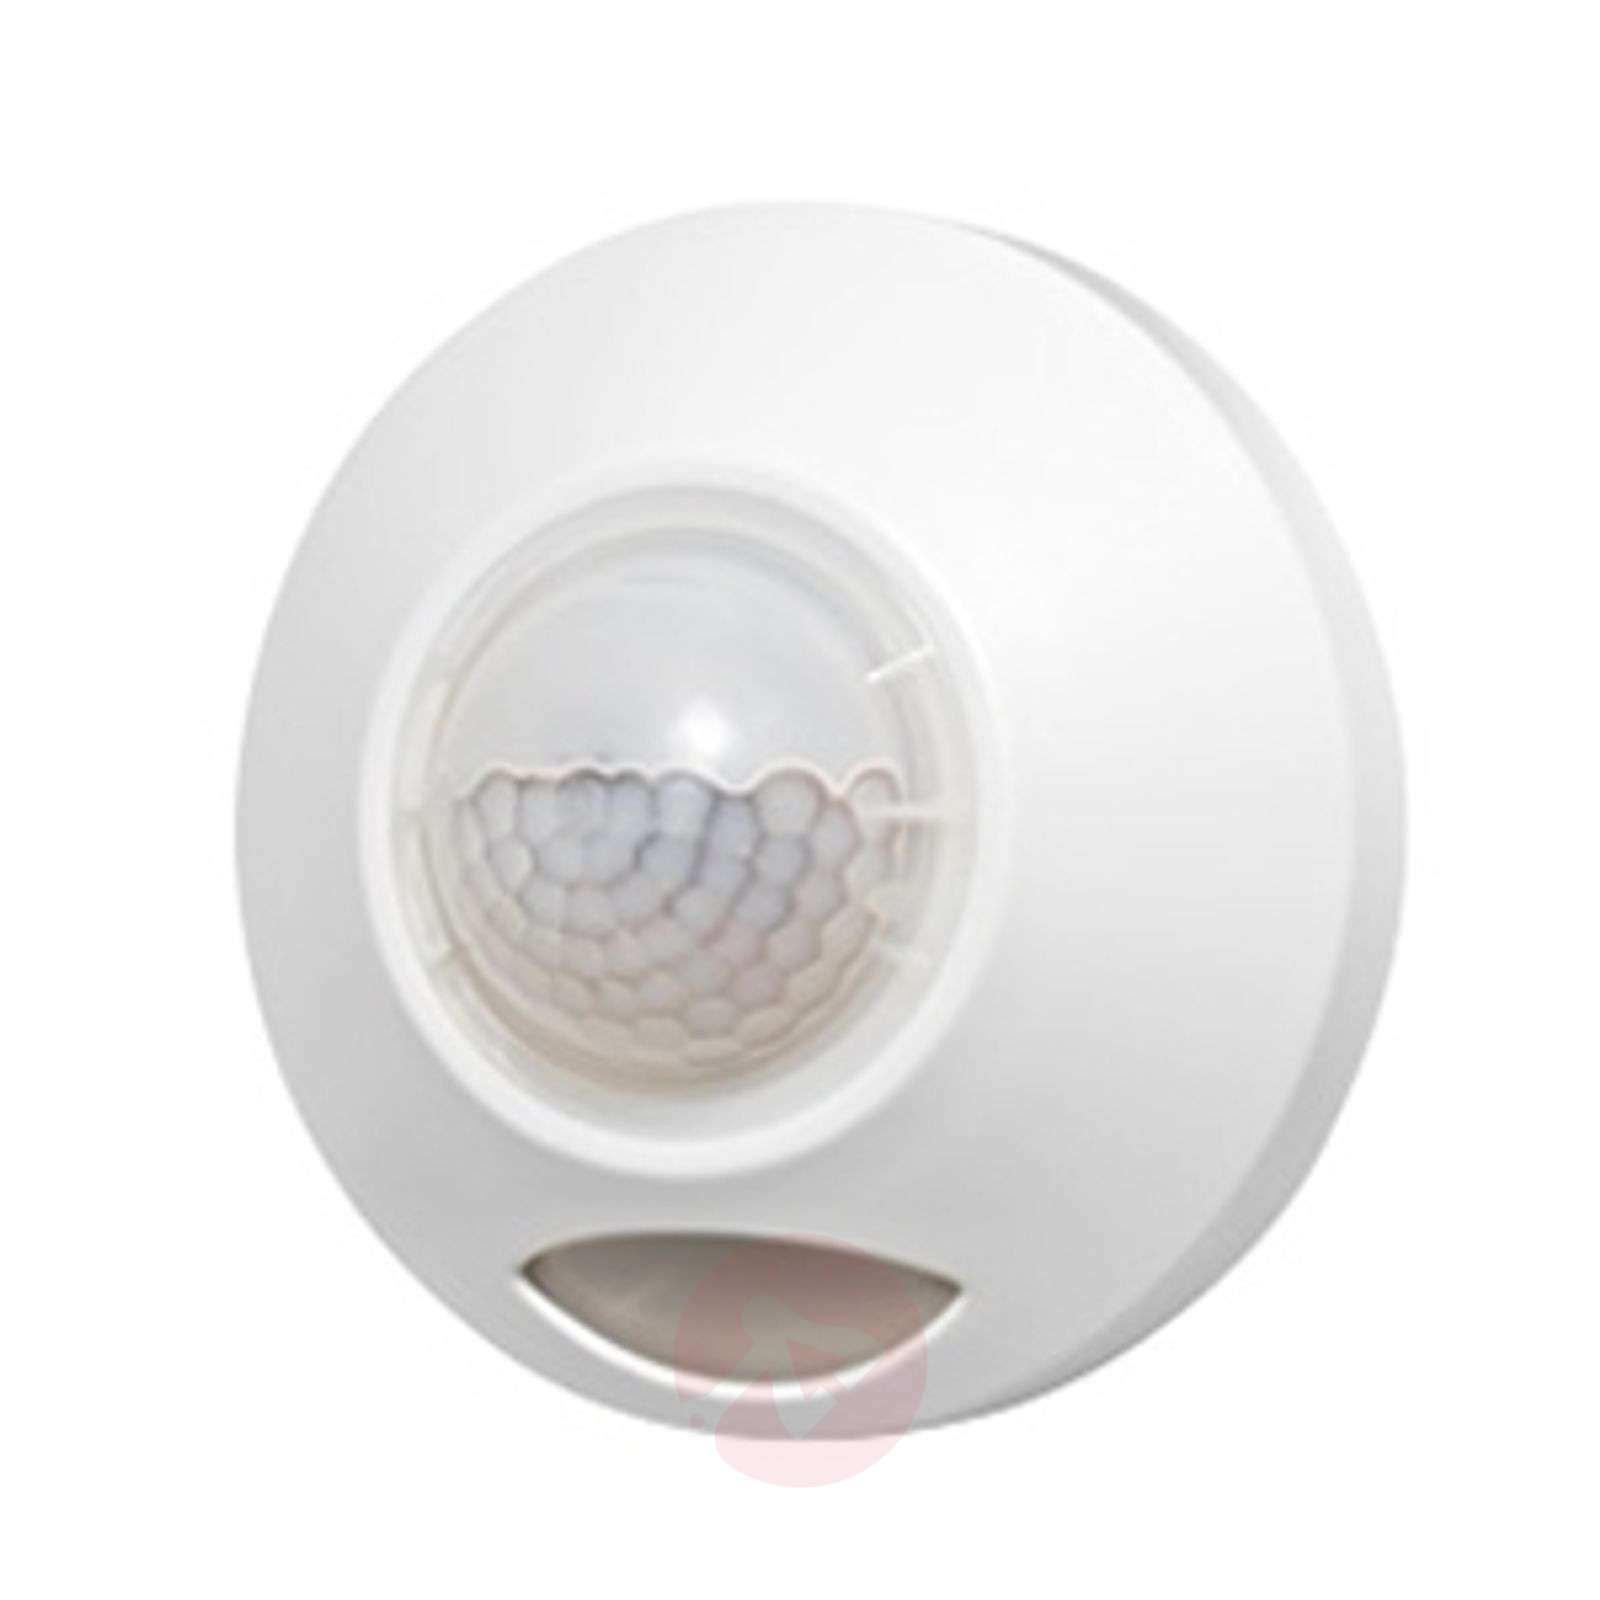 Innovatieve LED-traplamp LLL 120degree-4013028-01